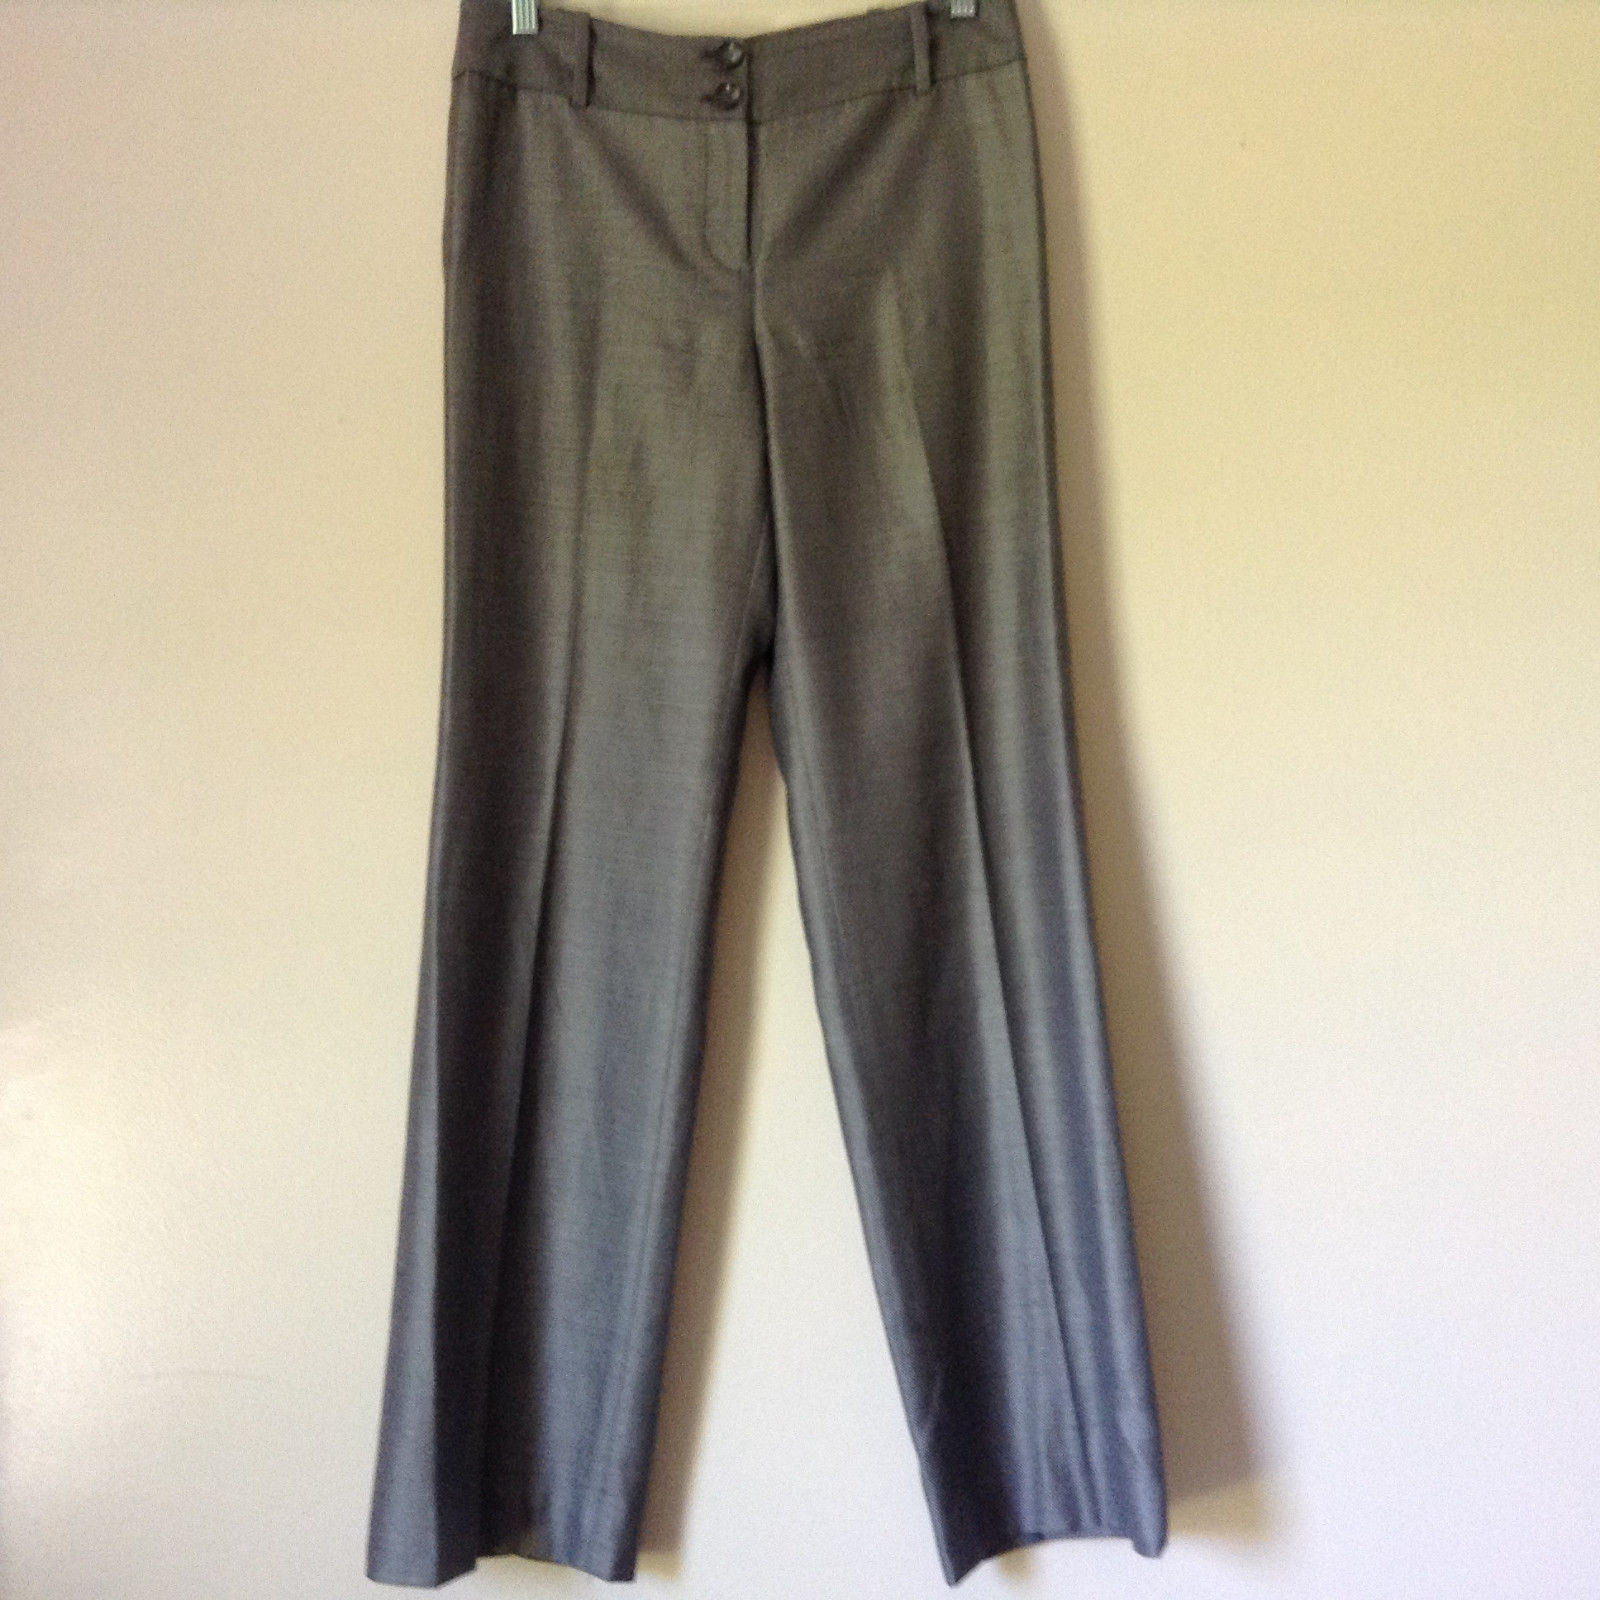 Margo Dress Pants by Ann Taylor Patterned Inside Lining Size 2